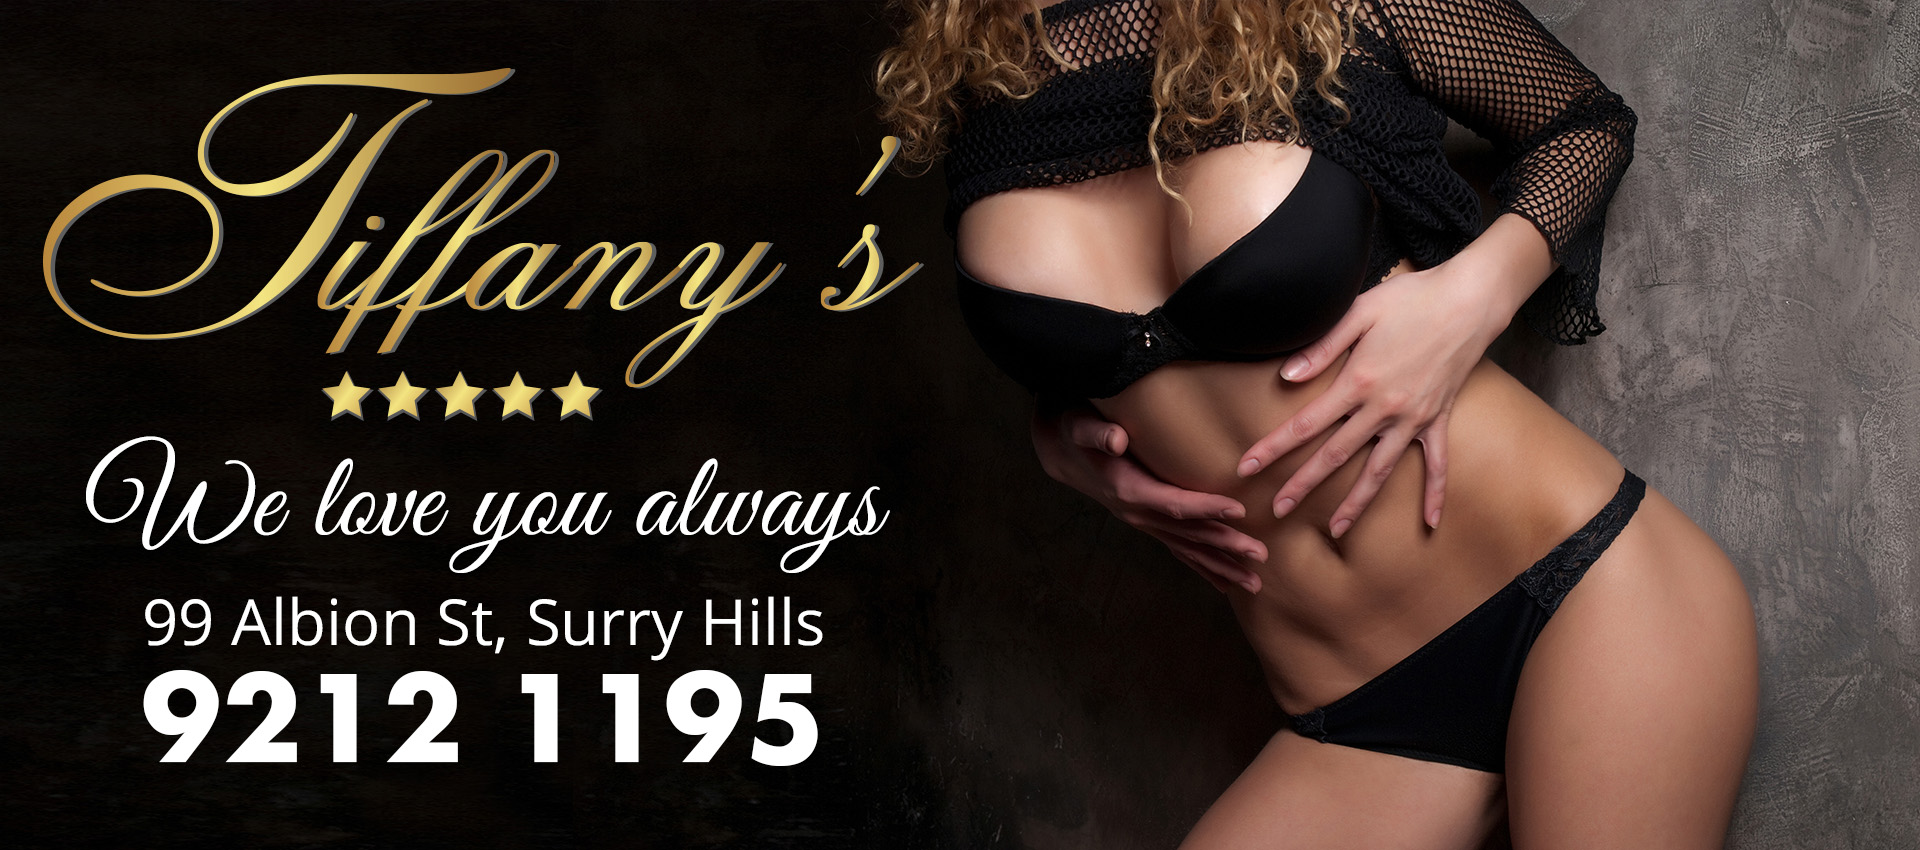 Surry Hills Brothel | Adult Services Sydney | Tiffany's Girls